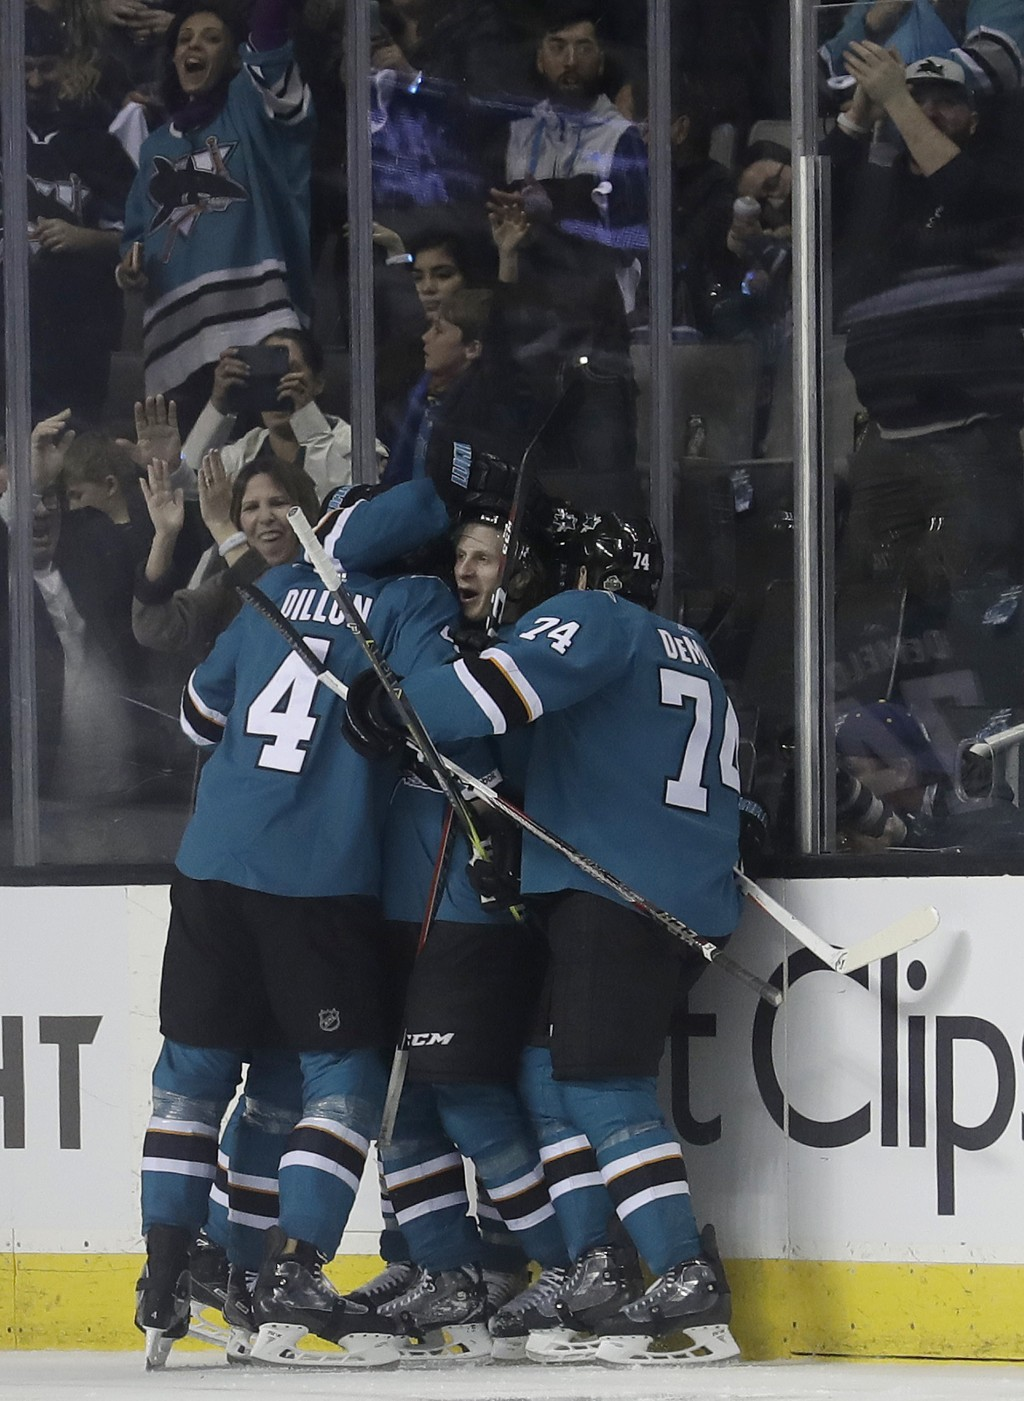 San Jose Sharks left wing Marcus Sorensen, center facing, from Sweden, celebrates with teammates after scoring a goal against the Anaheim Ducks during